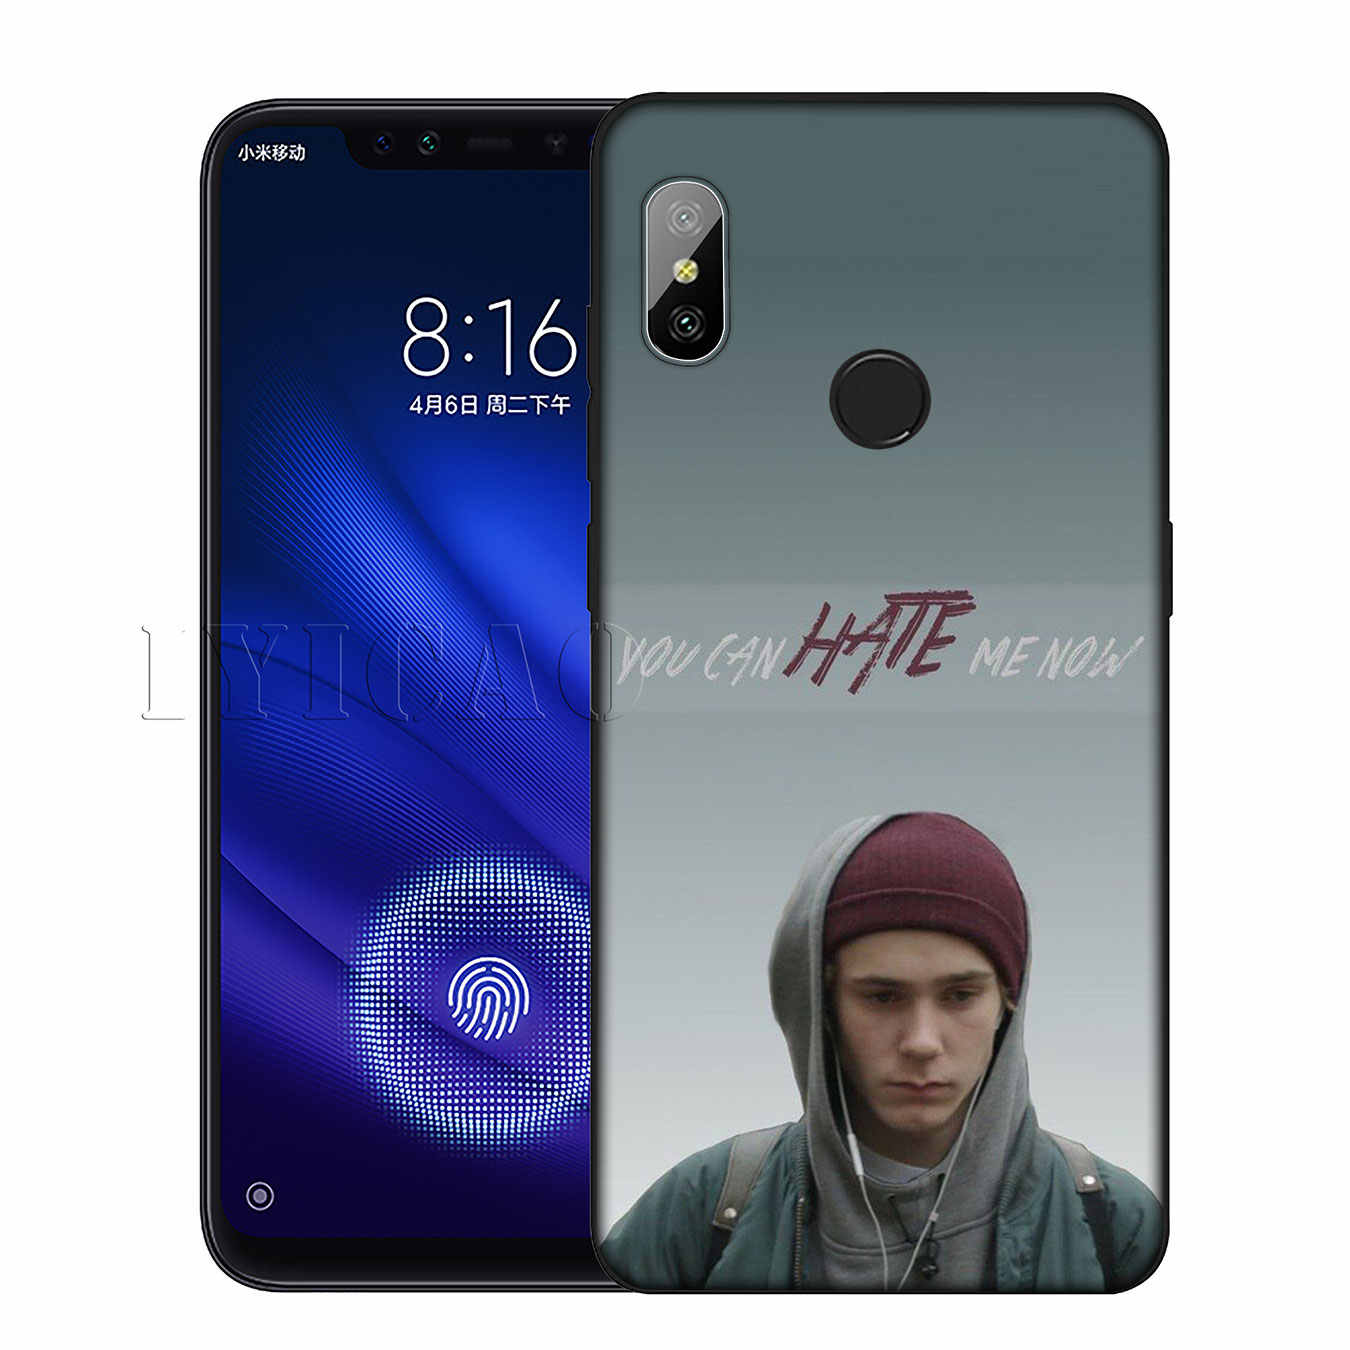 IYICAO Norwegian tv SKAM Silicone Soft Case for Xiaomi Redmi 6A 5A Note 8 7 4 4X 5 Plus 6 Pro Black TPU Cover